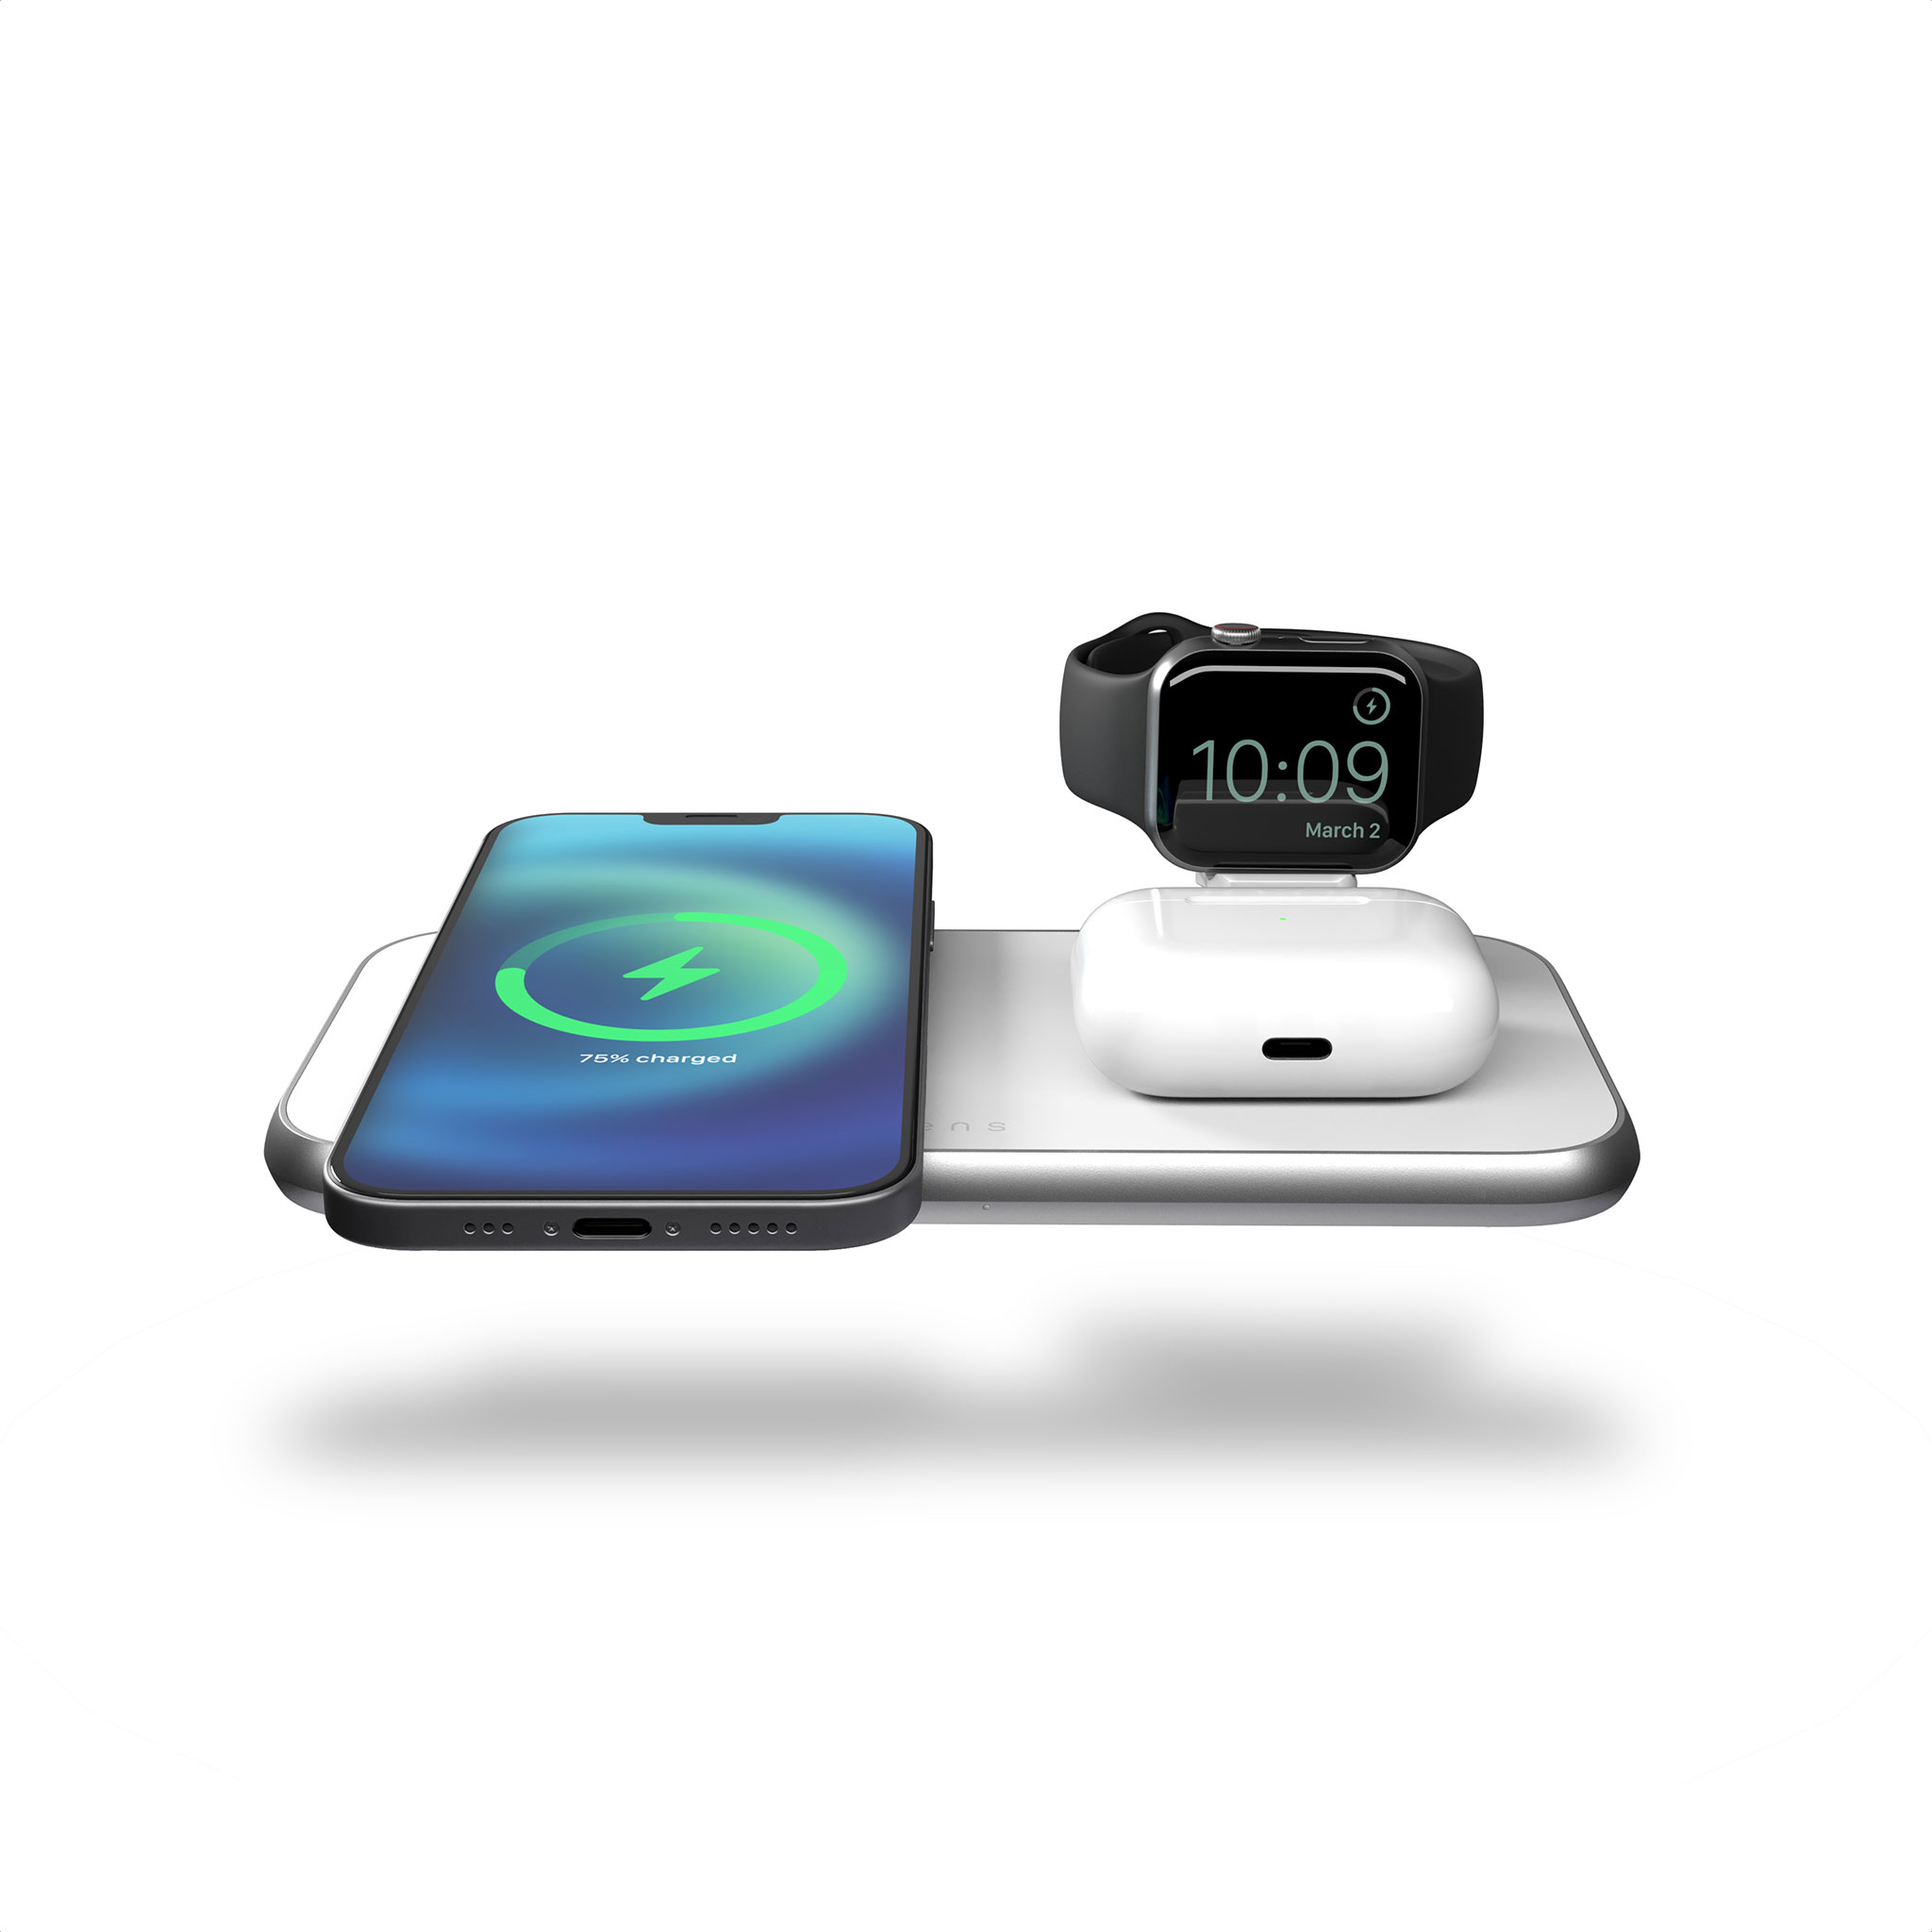 ZEDC17W - Zens 4-in-1 MagSafe Wireless Charger Front Top View with devices